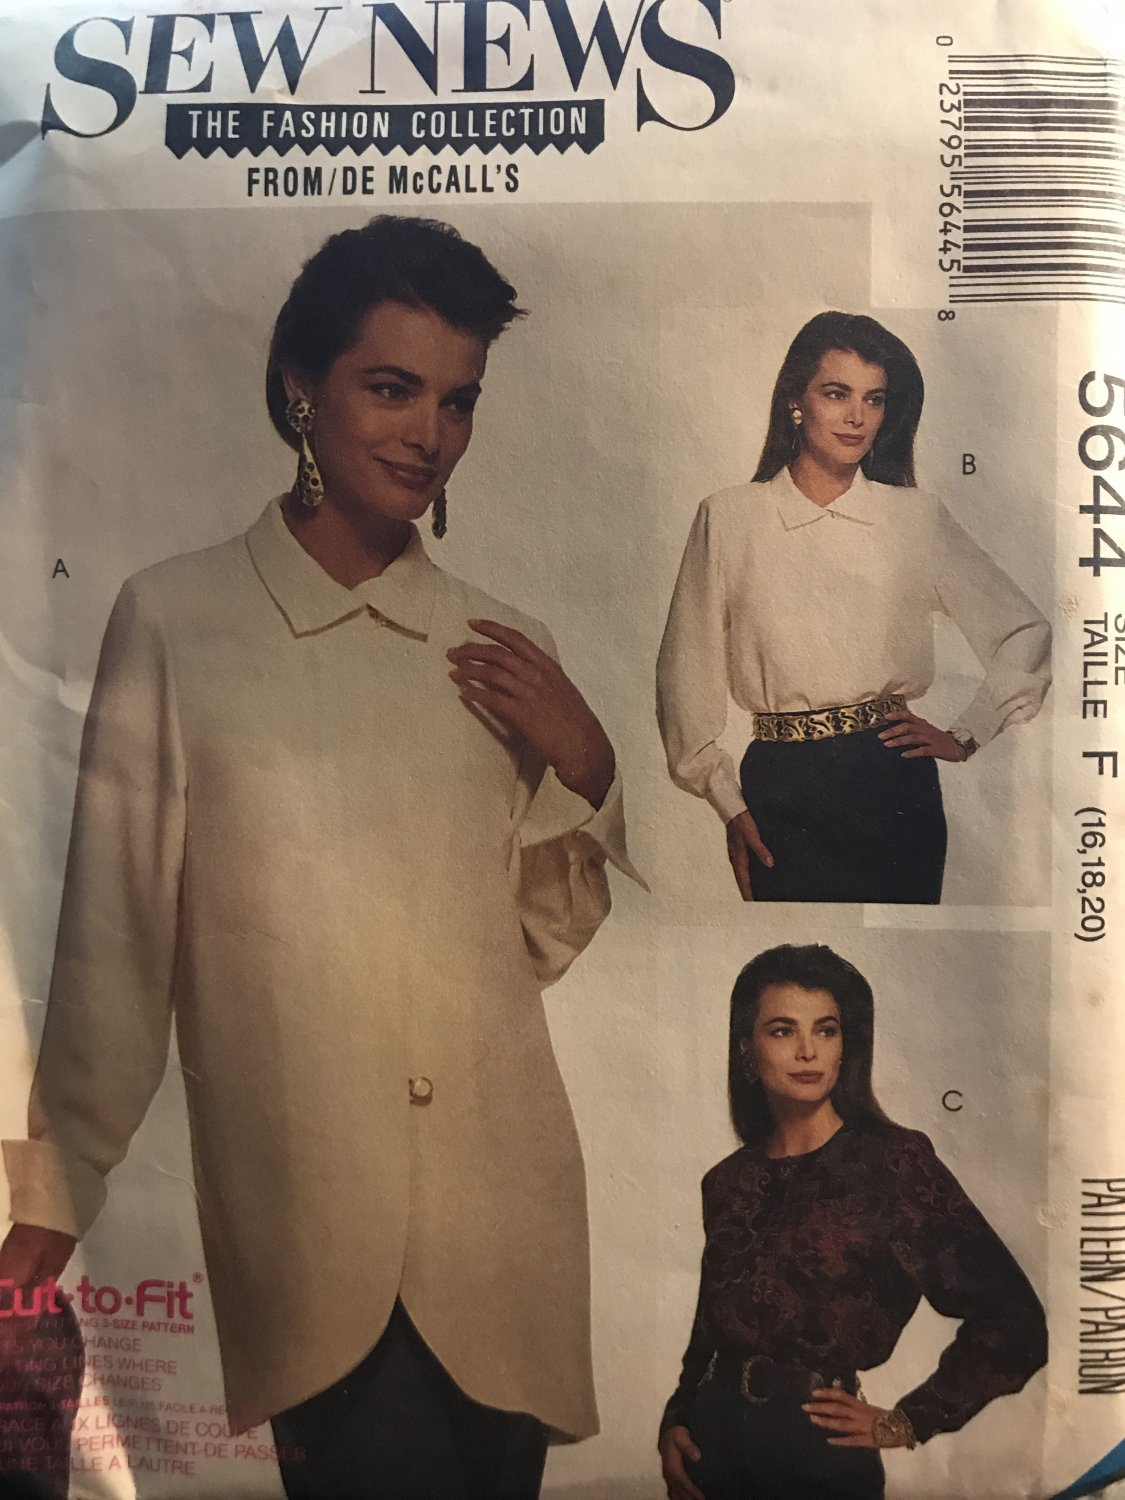 McCall's 5644 Misses' Blouses Sewing Pattern size 16 18 20 Sew News Pattern